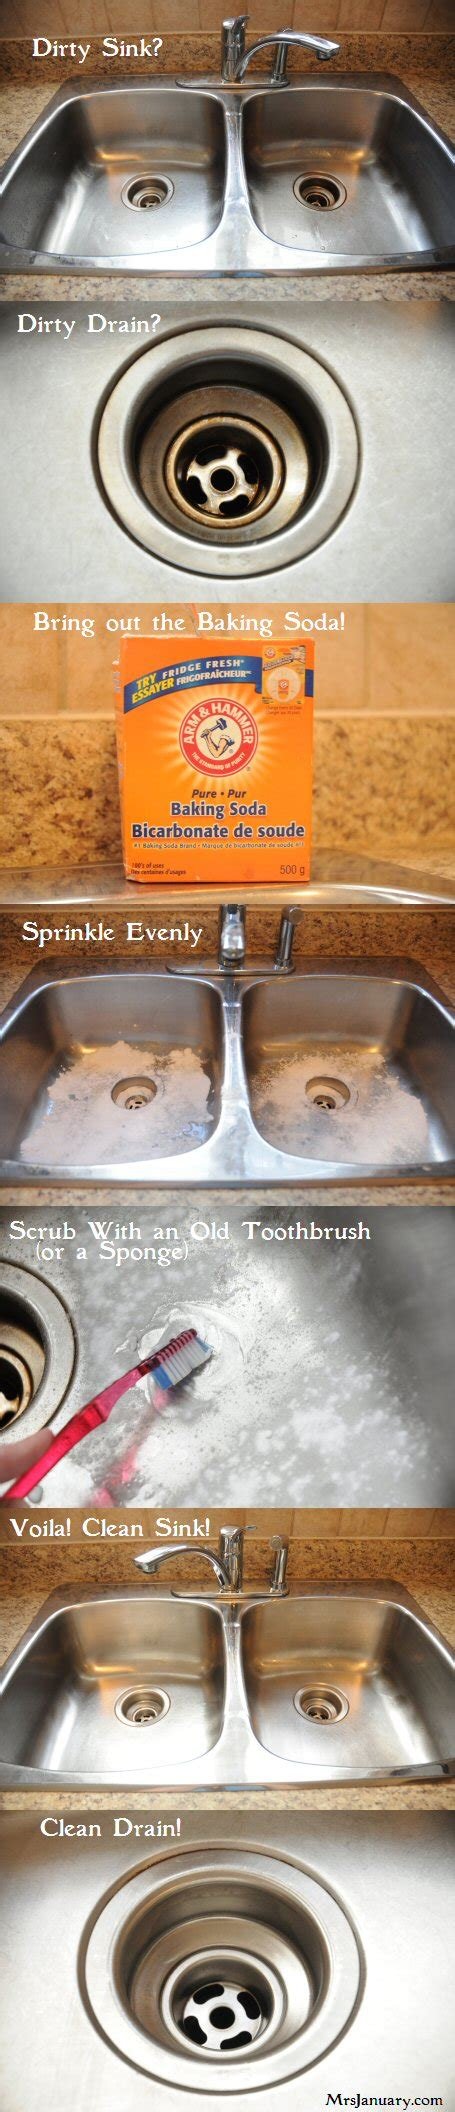 clean out kitchen drain how to shine a stainless steel